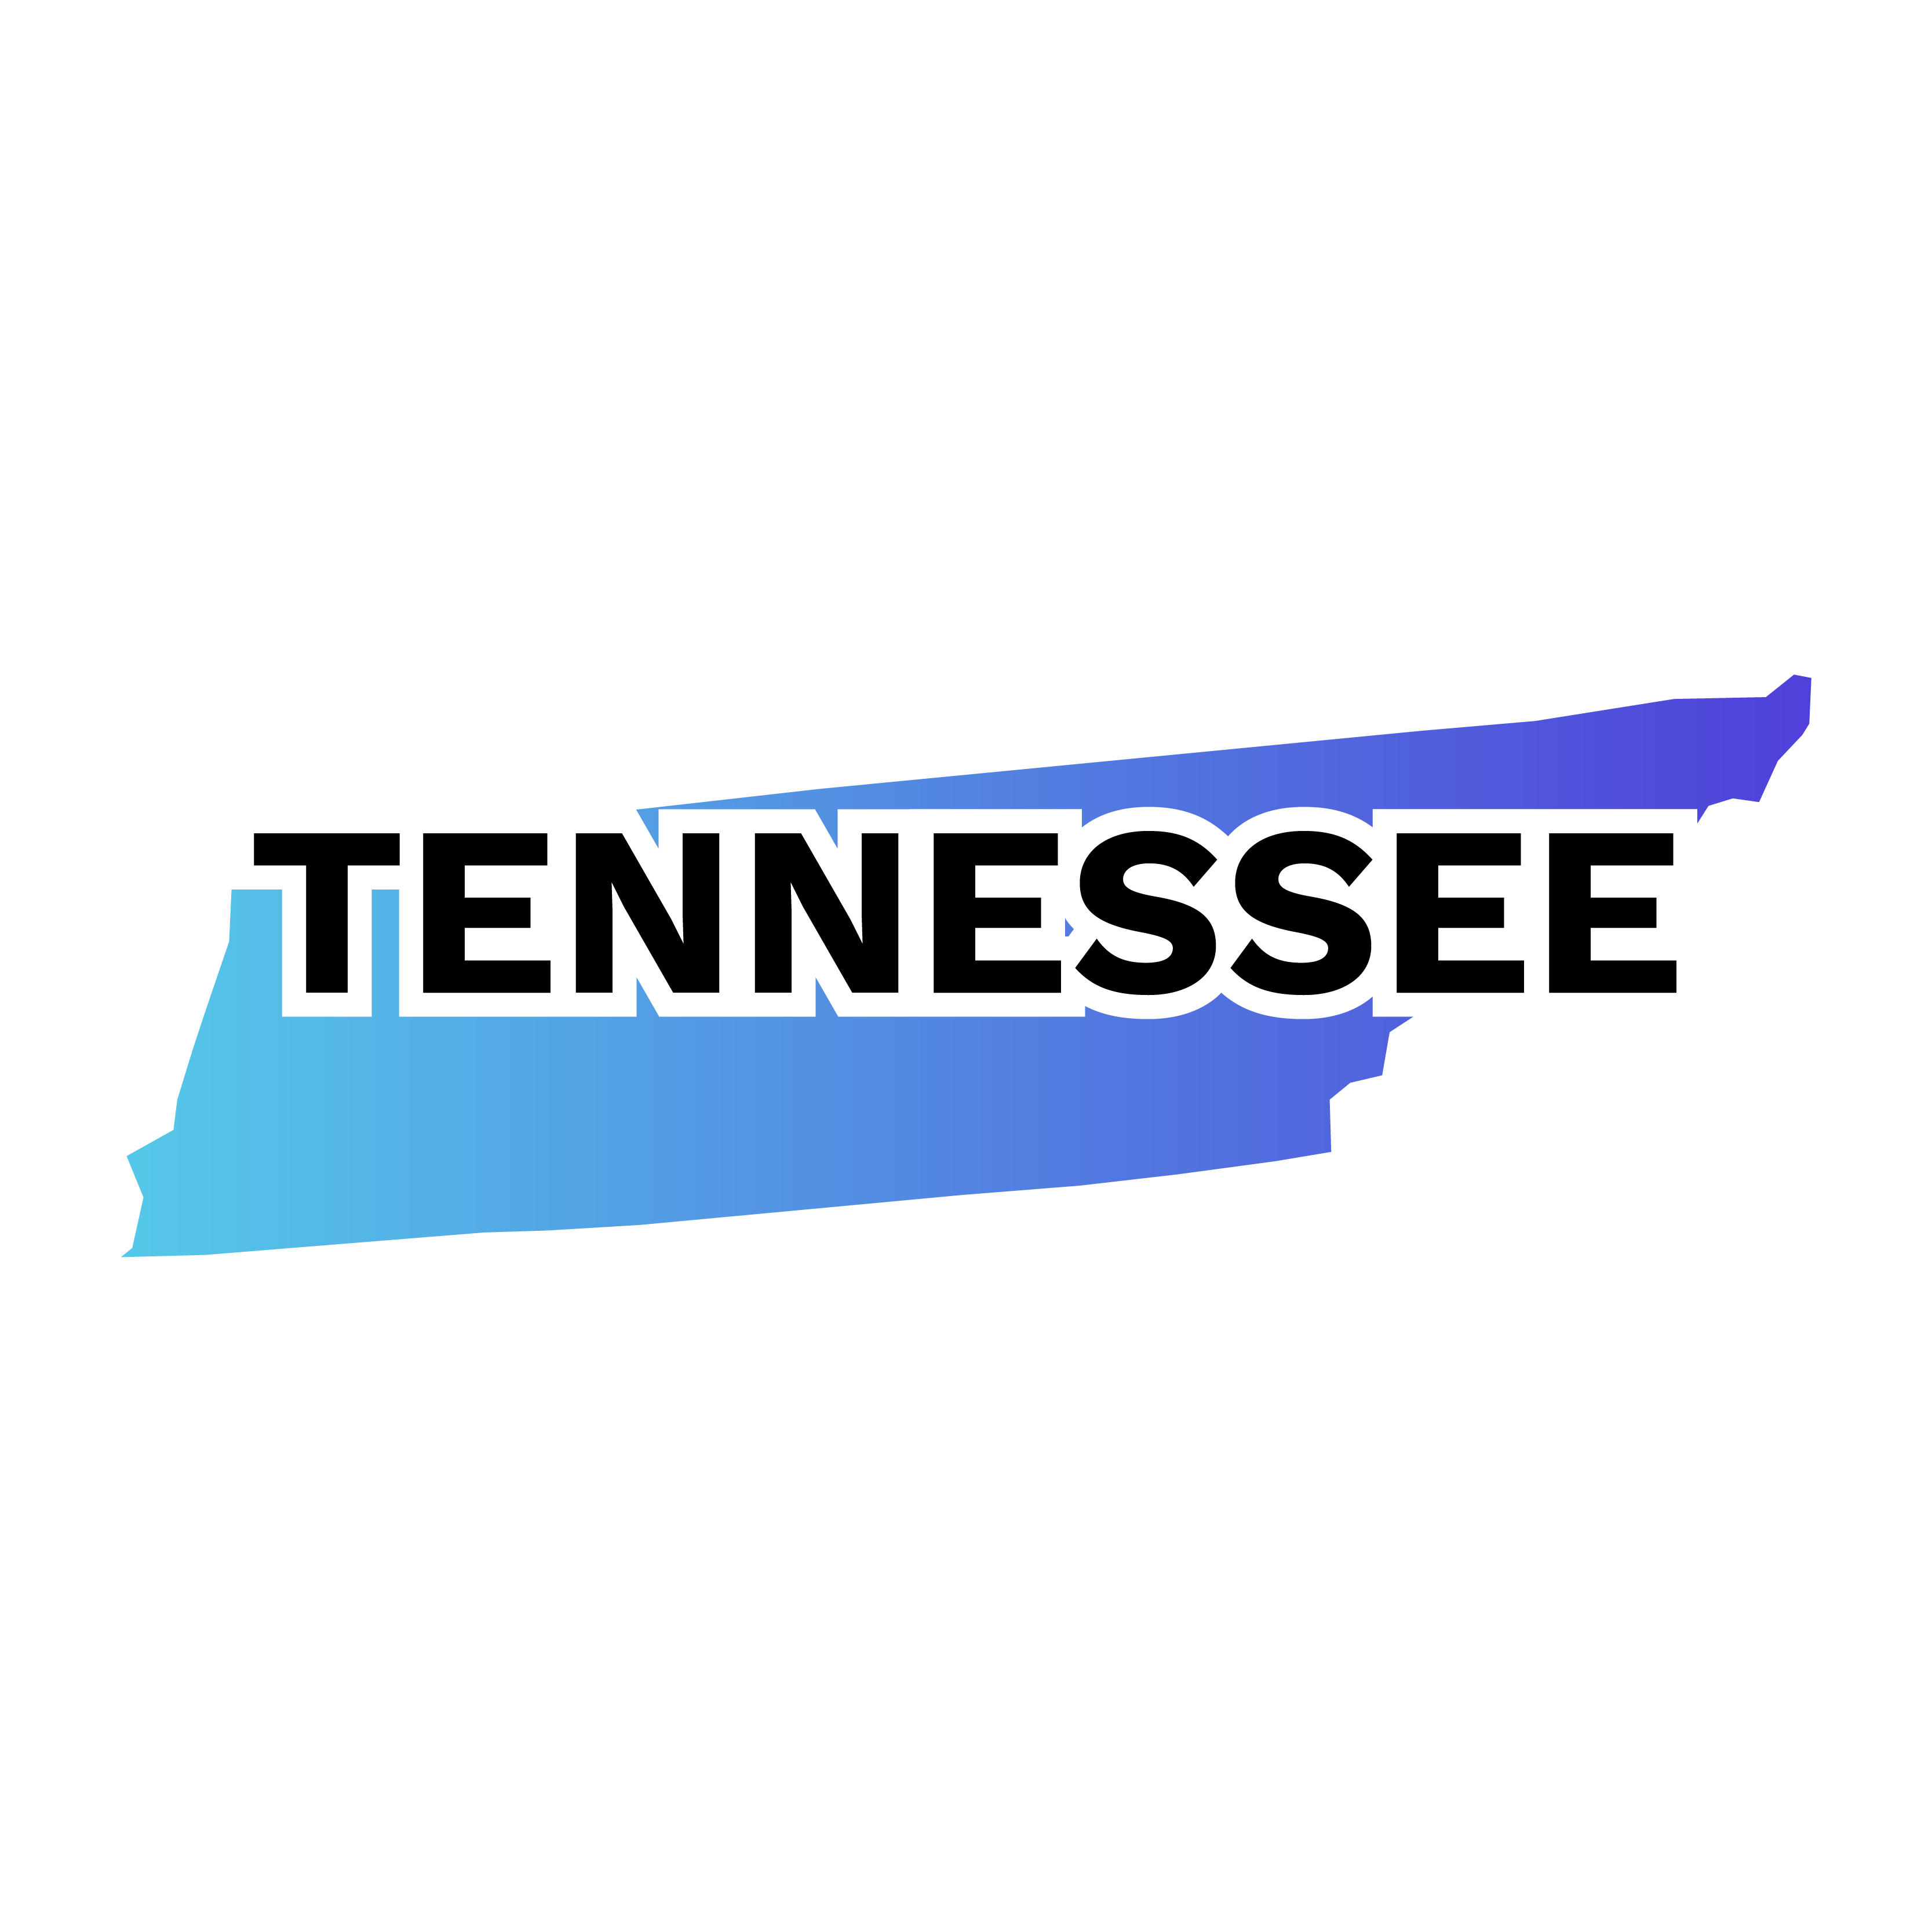 Tennessee State Image